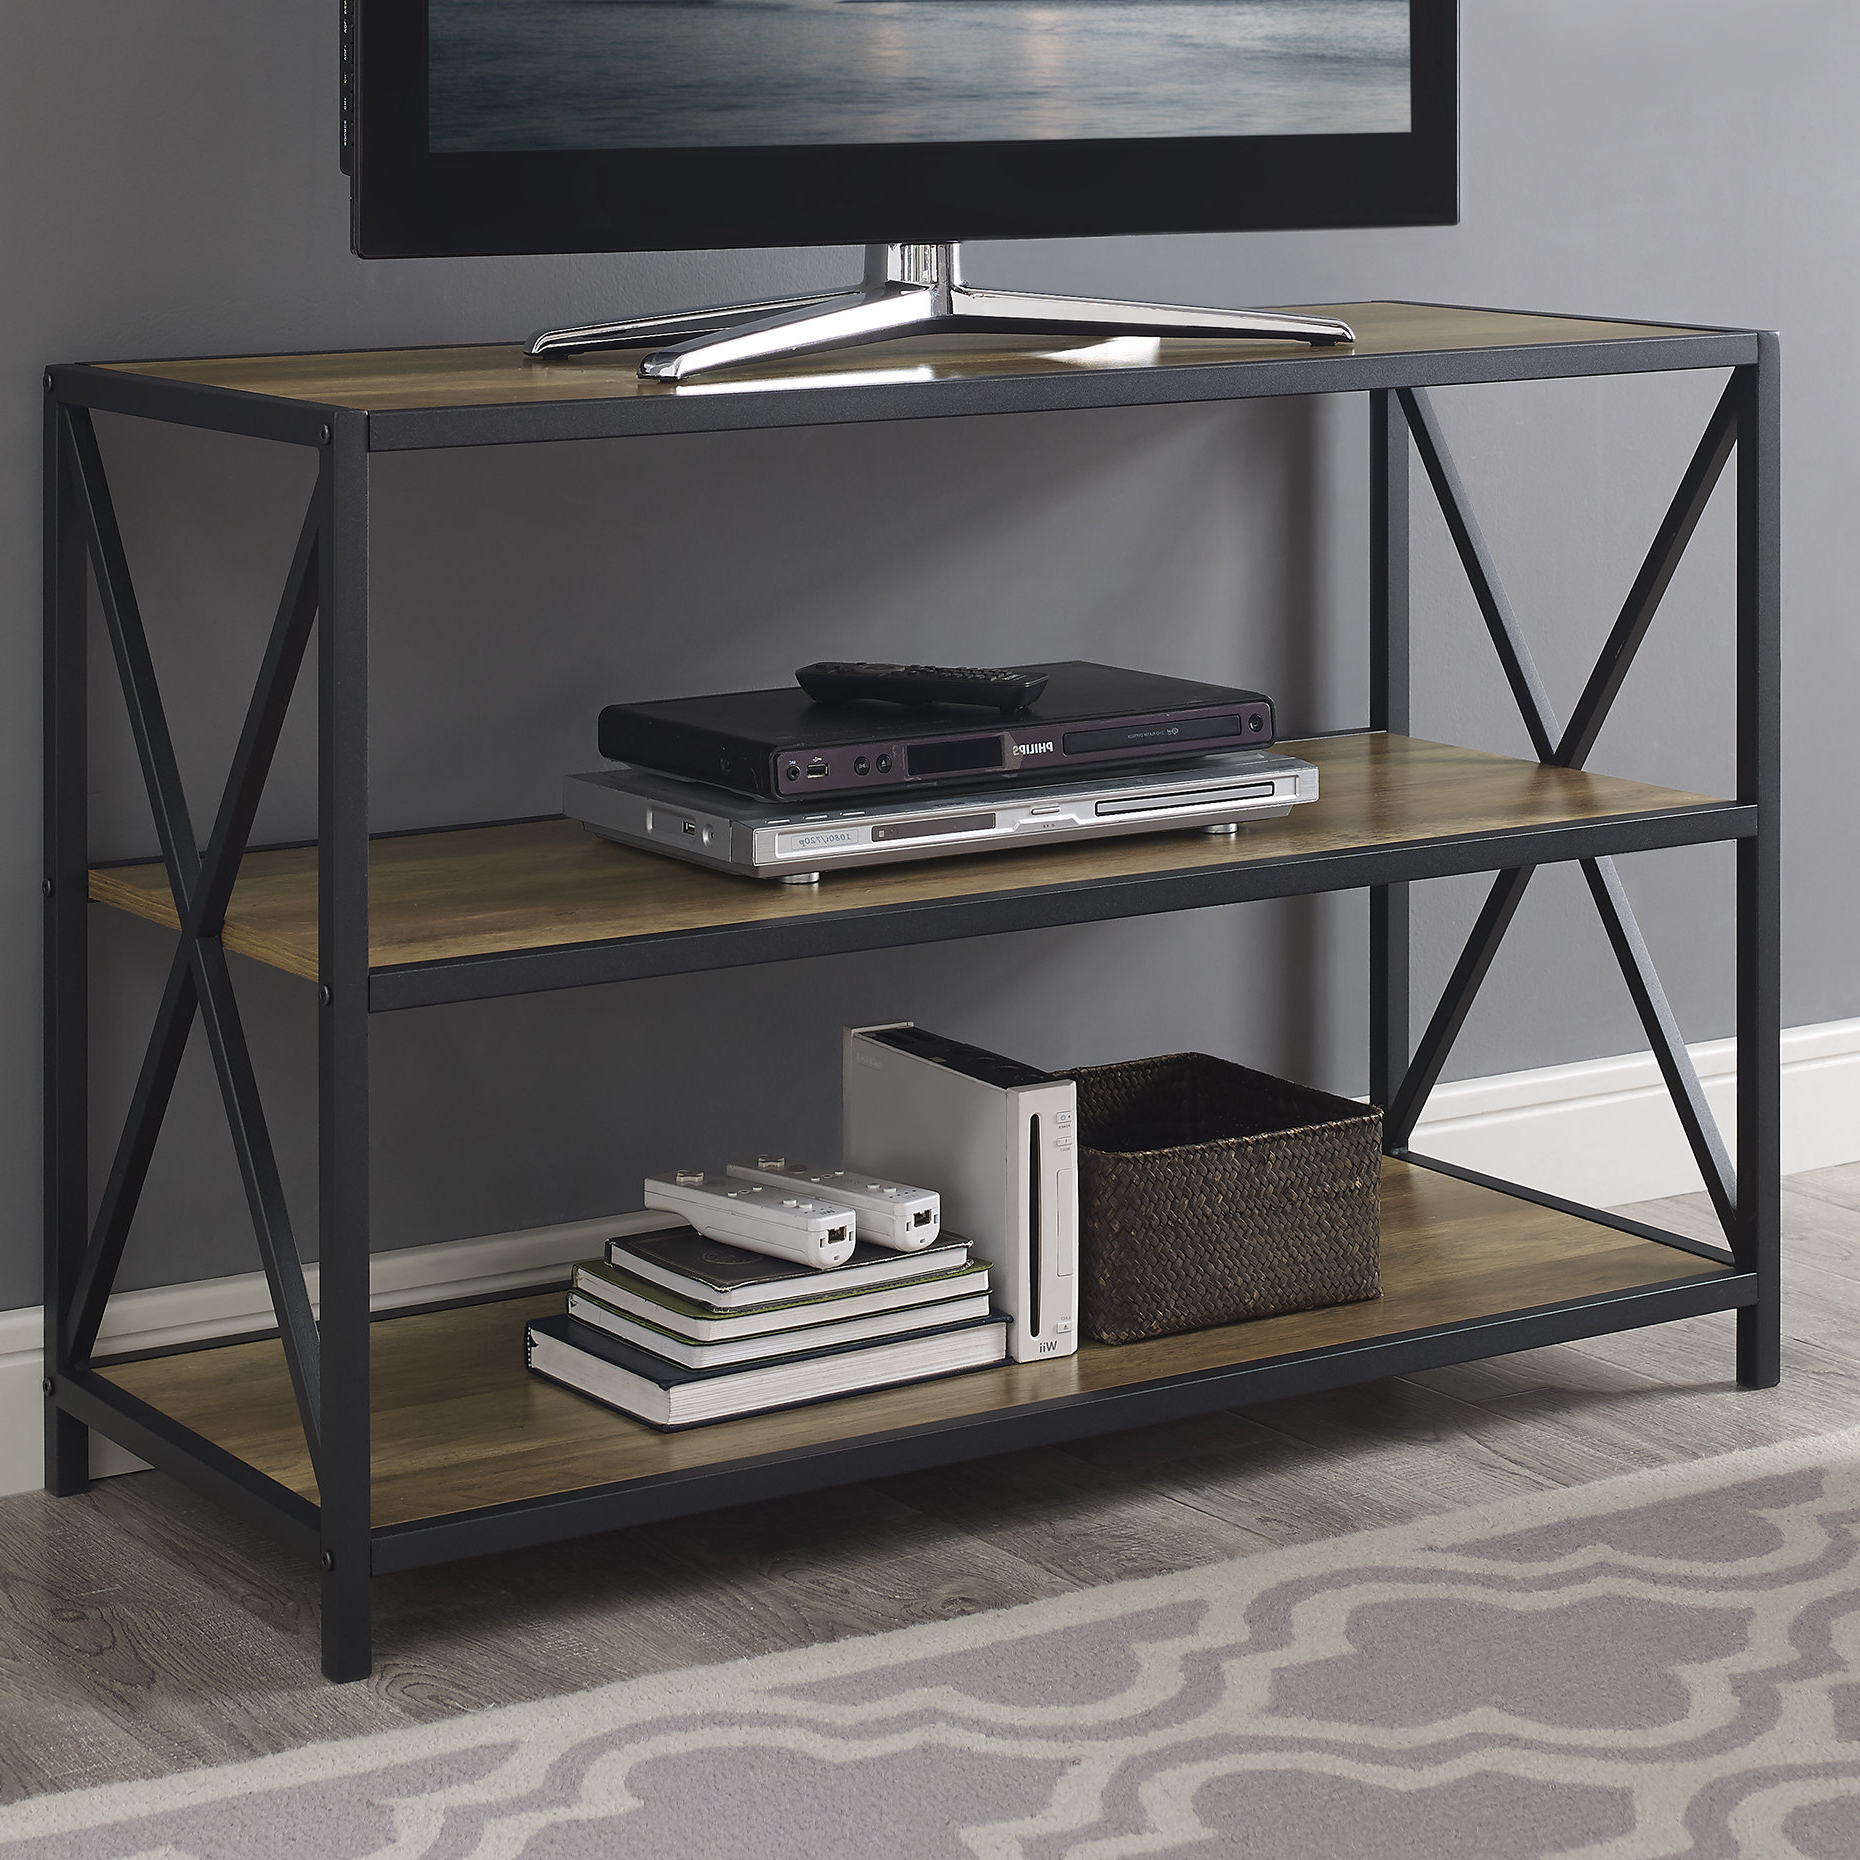 Preferred Adair Etagere Bookcases Throughout Adair Etagere Bookcase (View 18 of 20)